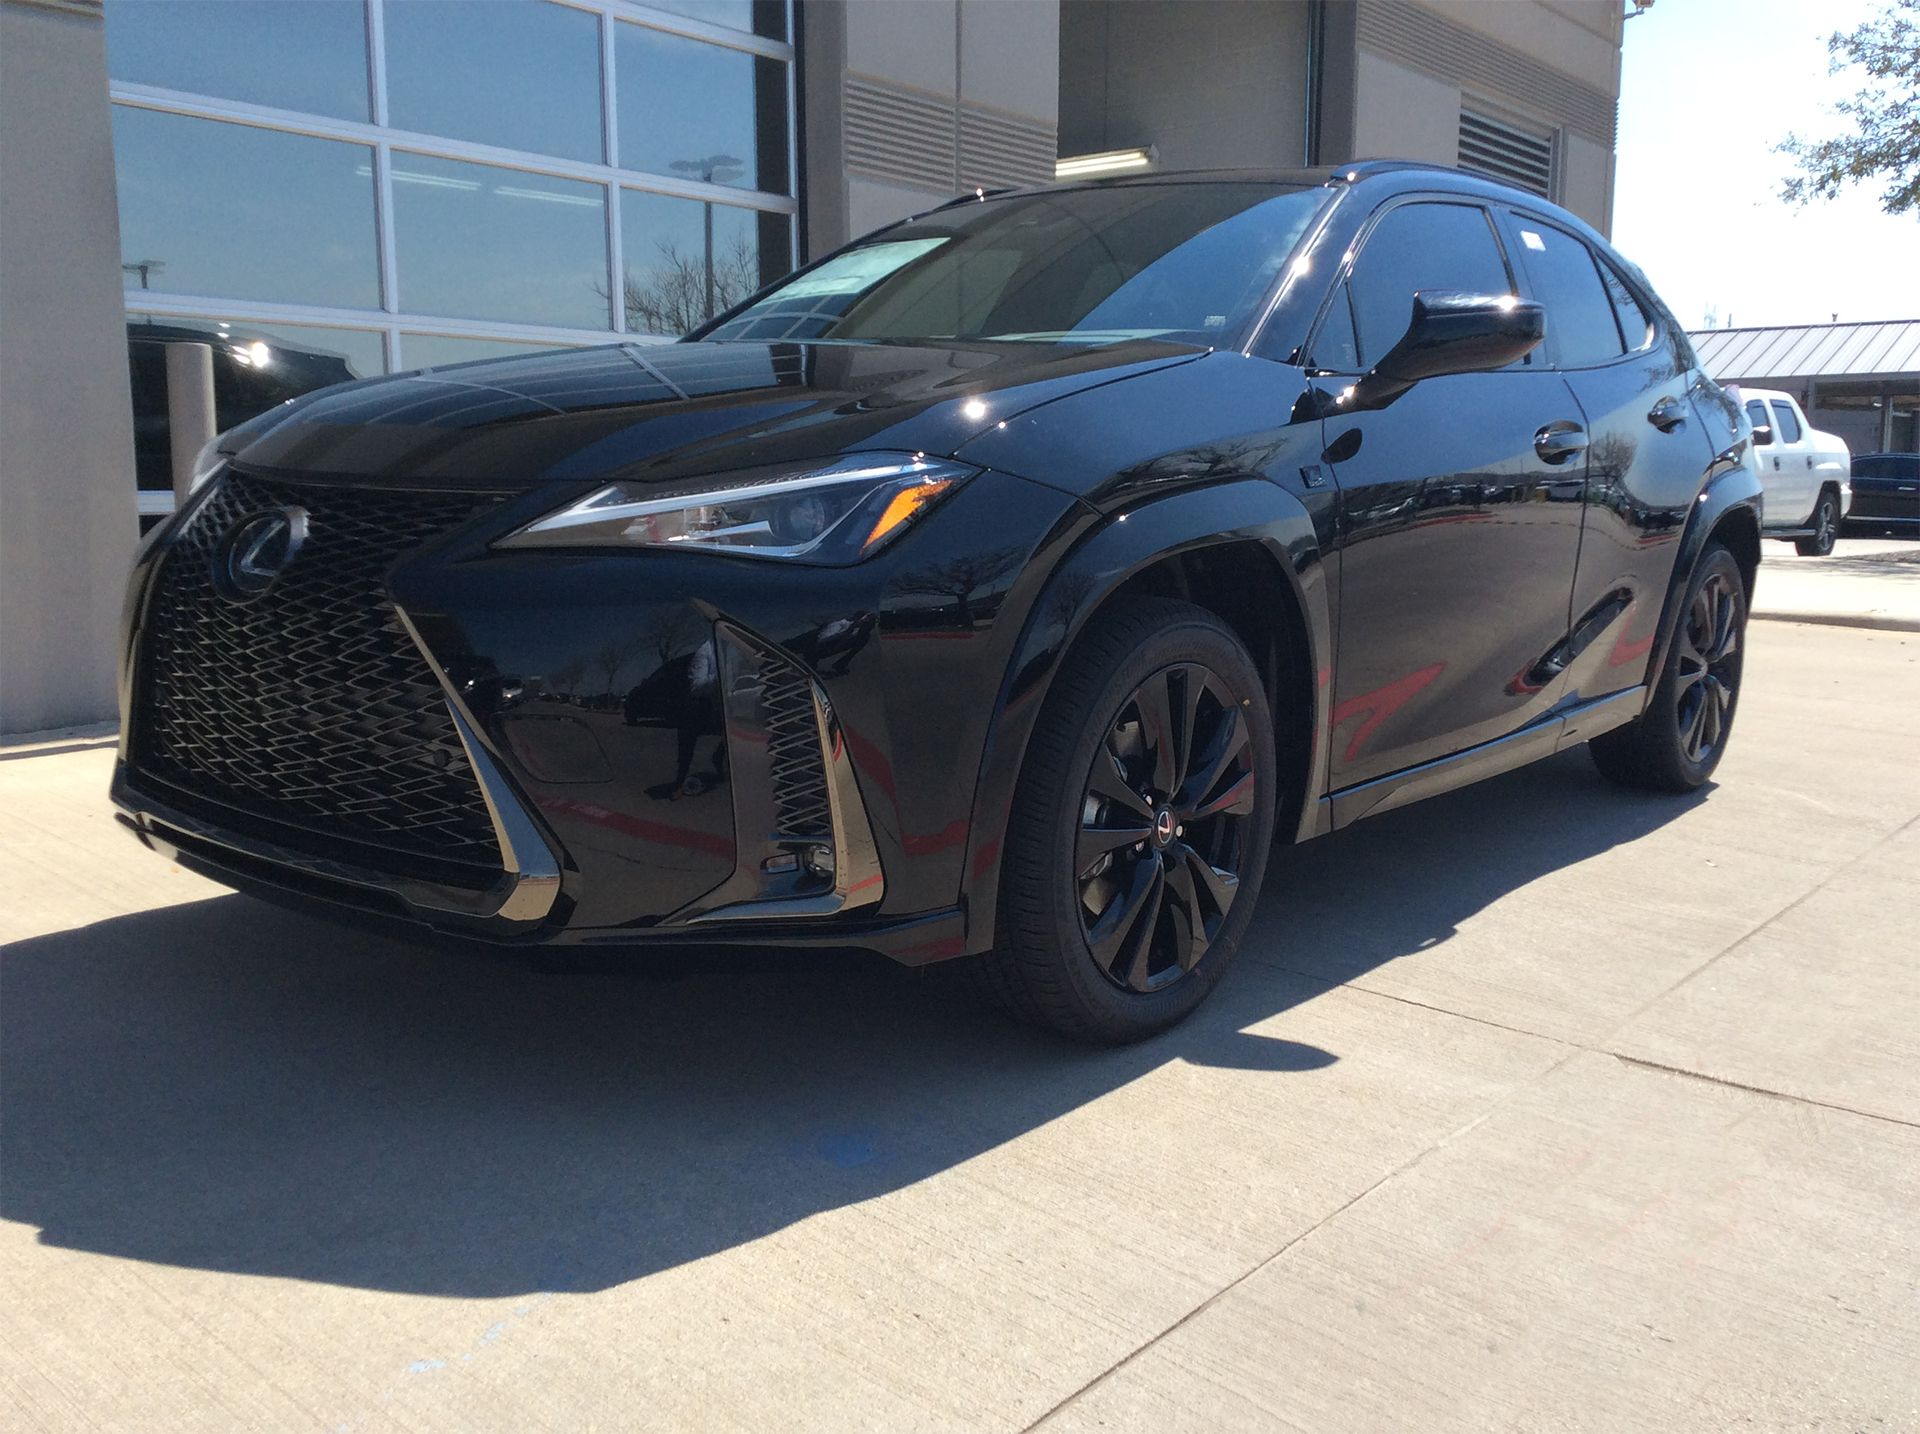 2019 Lexus Ux200 Blacked Out 2019 Cvdauto Lexus Ux Lexus Car Shop Sports Car